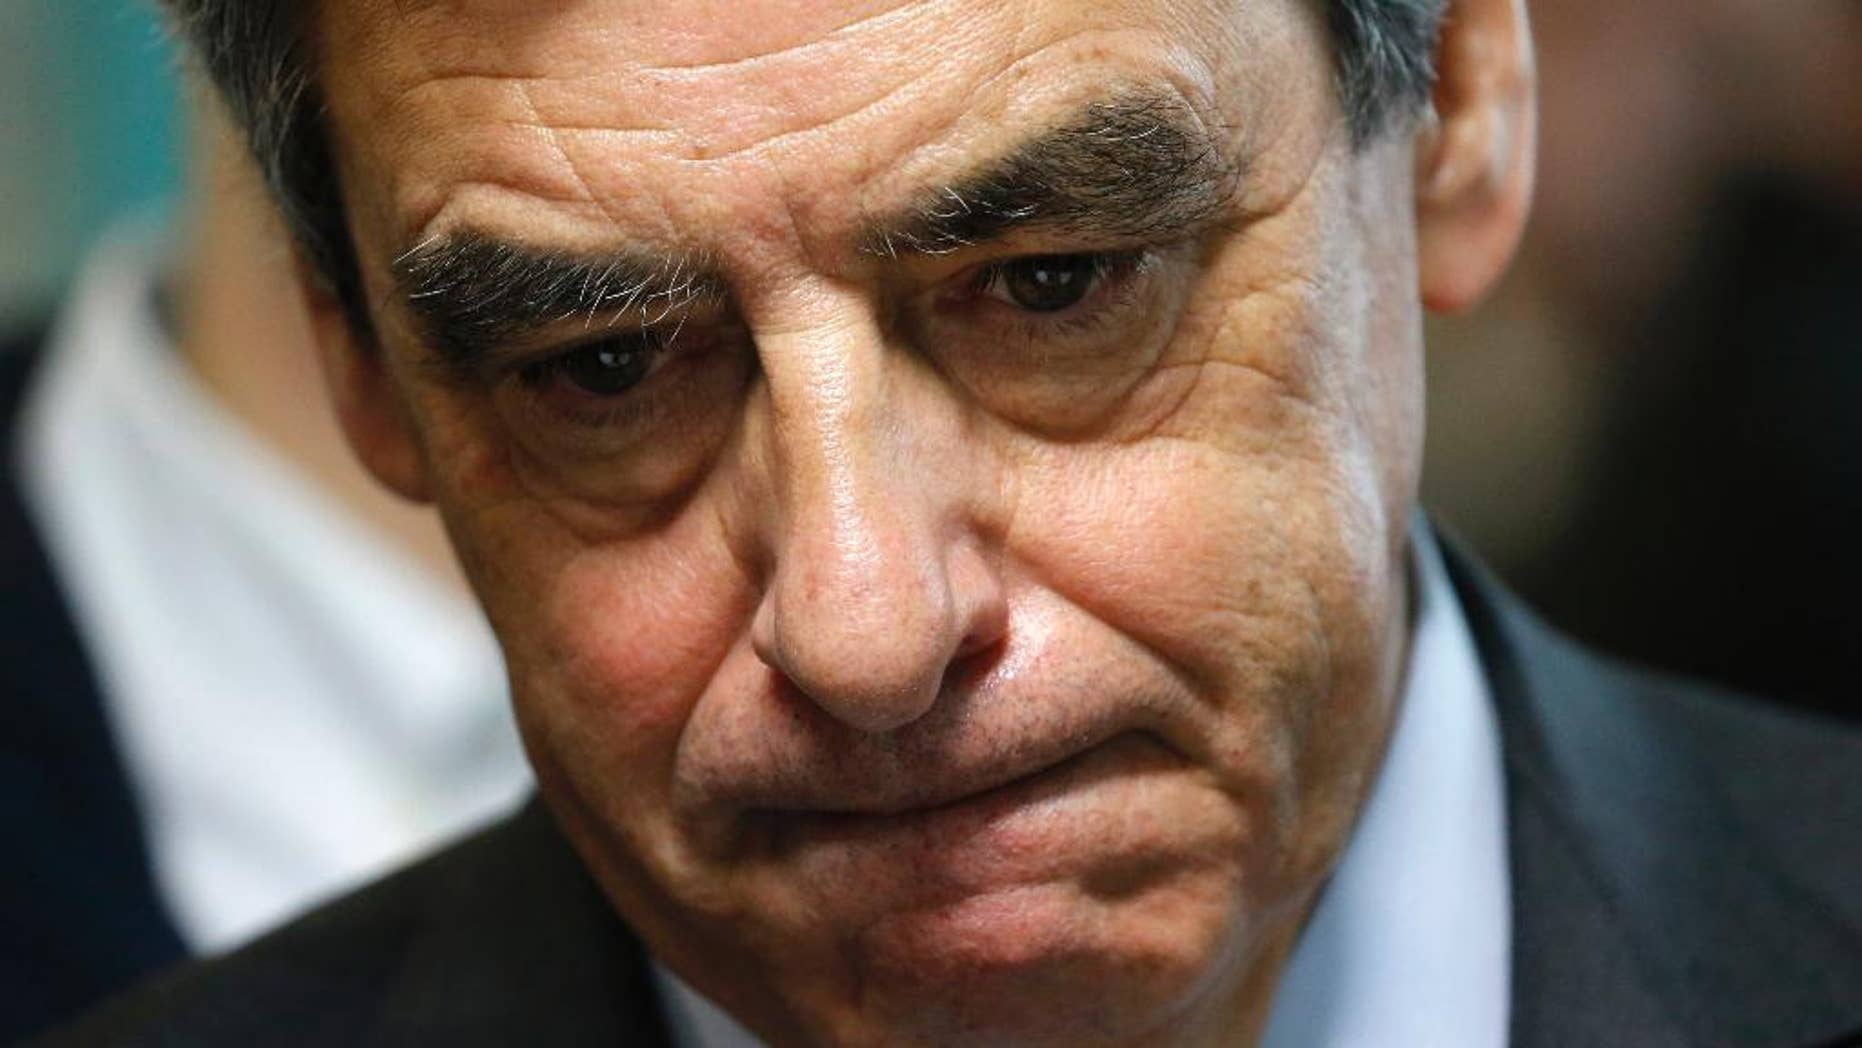 French conservative presidential candidate Francois Fillon reacts as he visits a social center as he campaigns in Tourcoing, northern France, Friday Feb. 17, 2017. French financial prosecutors decided Thursday to continue their investigation of embezzlement allegations against conservative presidential candidate Francois Fillon, saying they have too much evidence to drop the case. (Pascal Rossignol, Pool via AP)